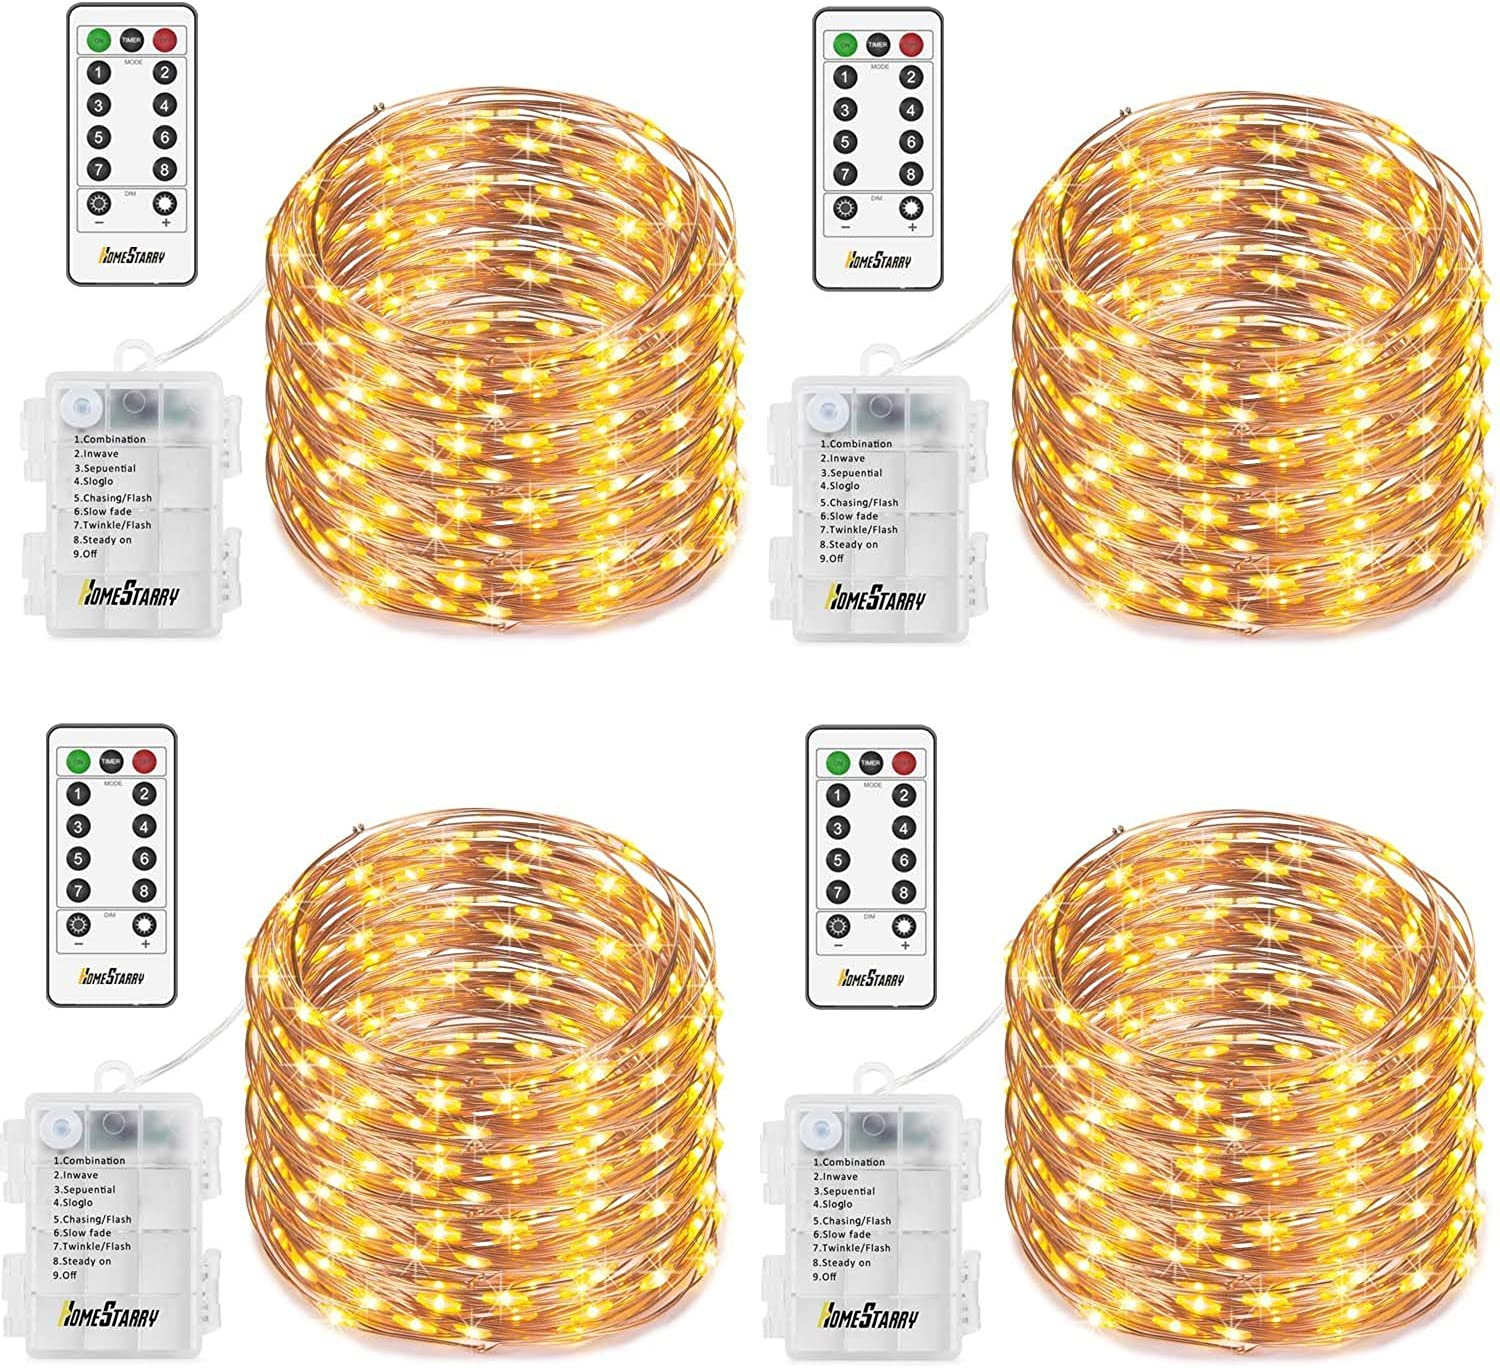 4 Pack Fairy String Lights Battery Operated Waterproof 8 Modes Remote Control 50 Led 16.4ft Indoor Lights Copper Wire Twinkle Lights for Bedroom Wedding Party Dinner Festival Decor (Warm White)